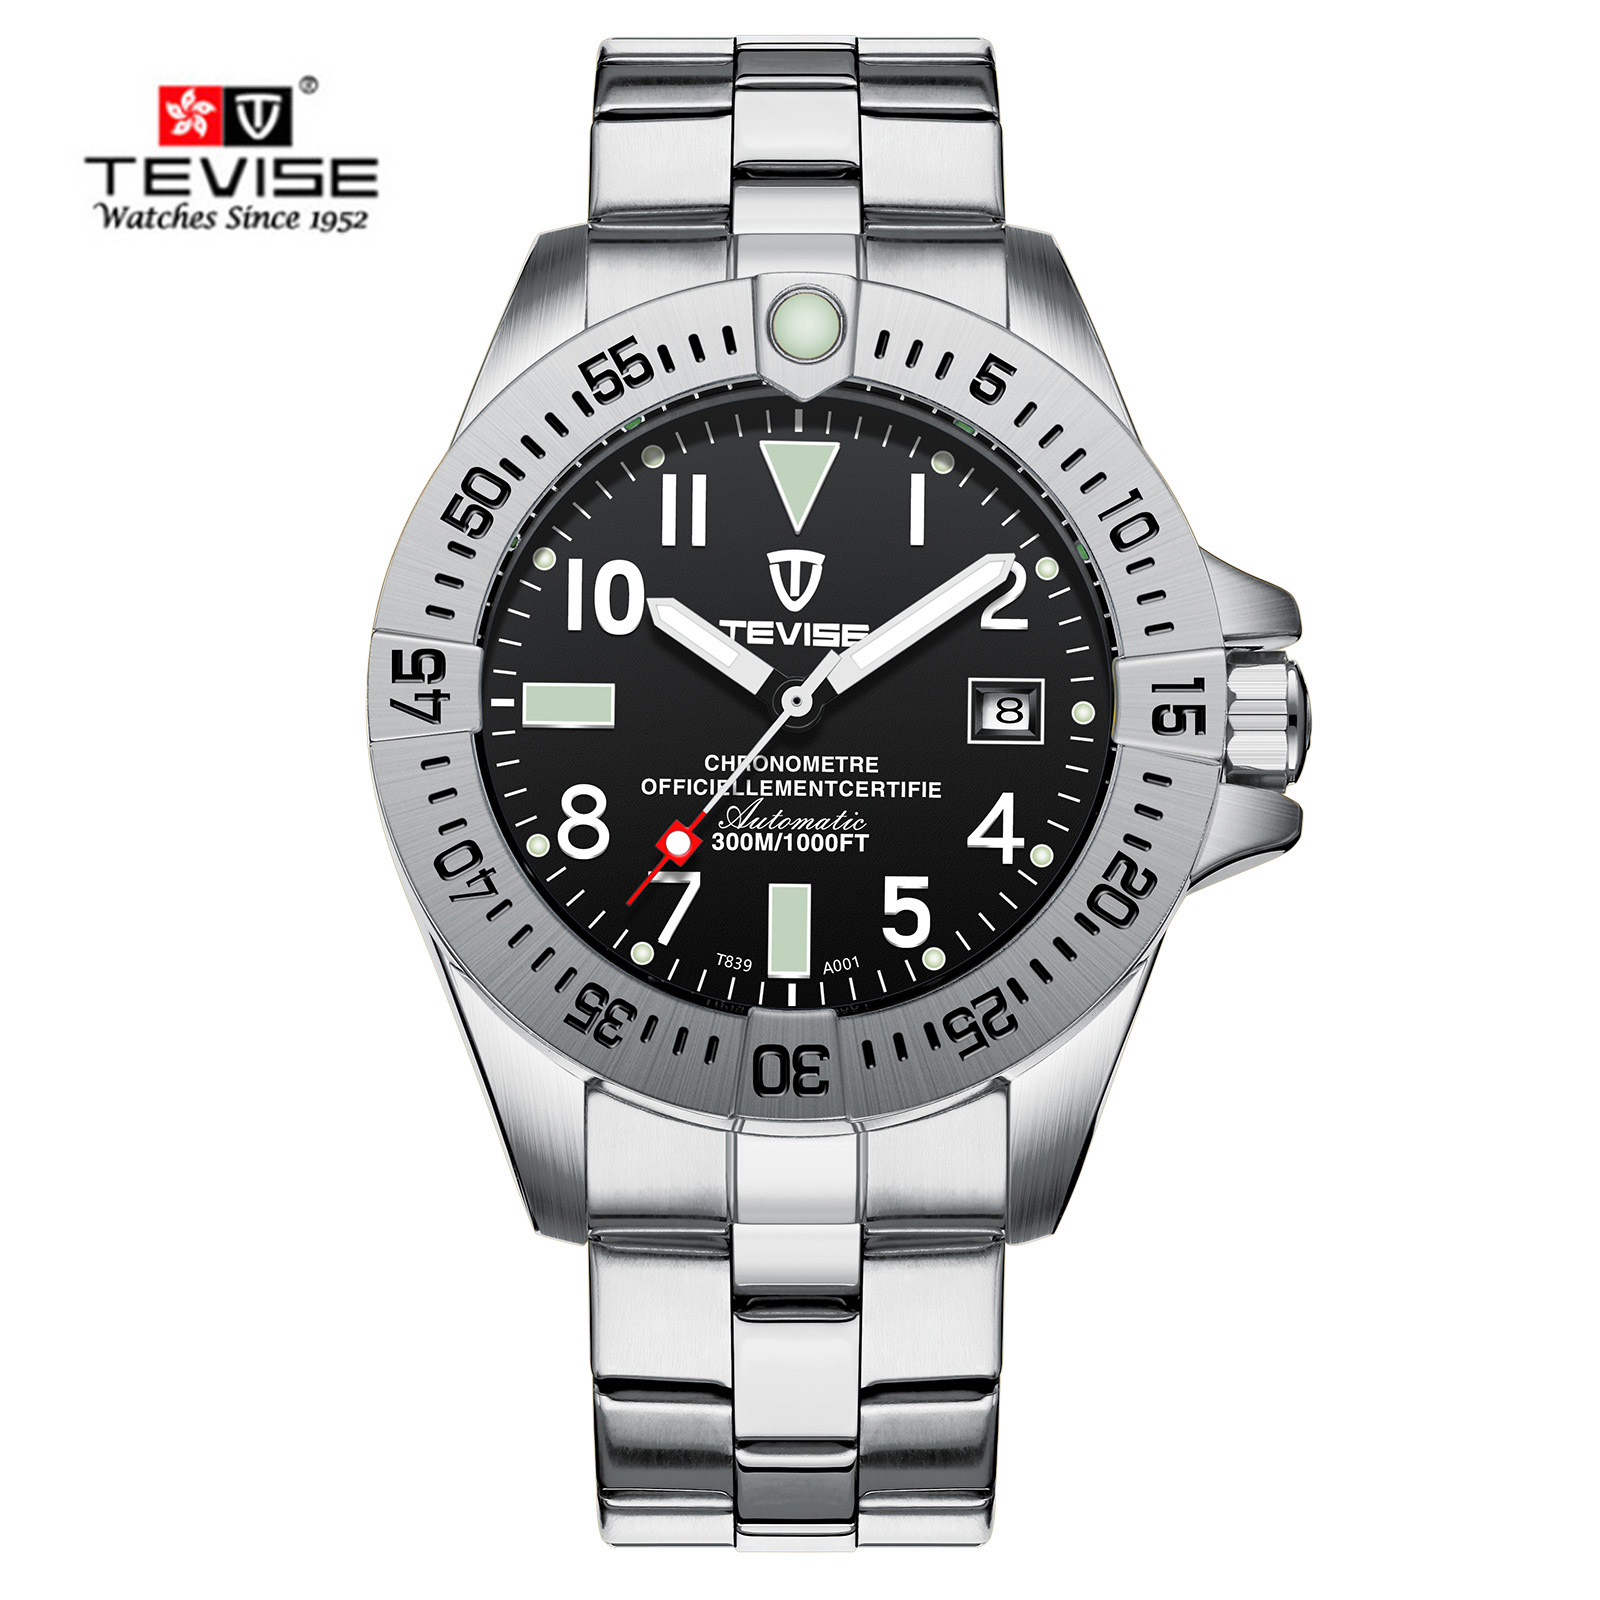 Relogio Tevise Men Watch Waterproof Automatic Mechanical Watches Men Wristwatches Clock Masculino With Gift box Reloj hombreRelogio Tevise Men Watch Waterproof Automatic Mechanical Watches Men Wristwatches Clock Masculino With Gift box Reloj hombre